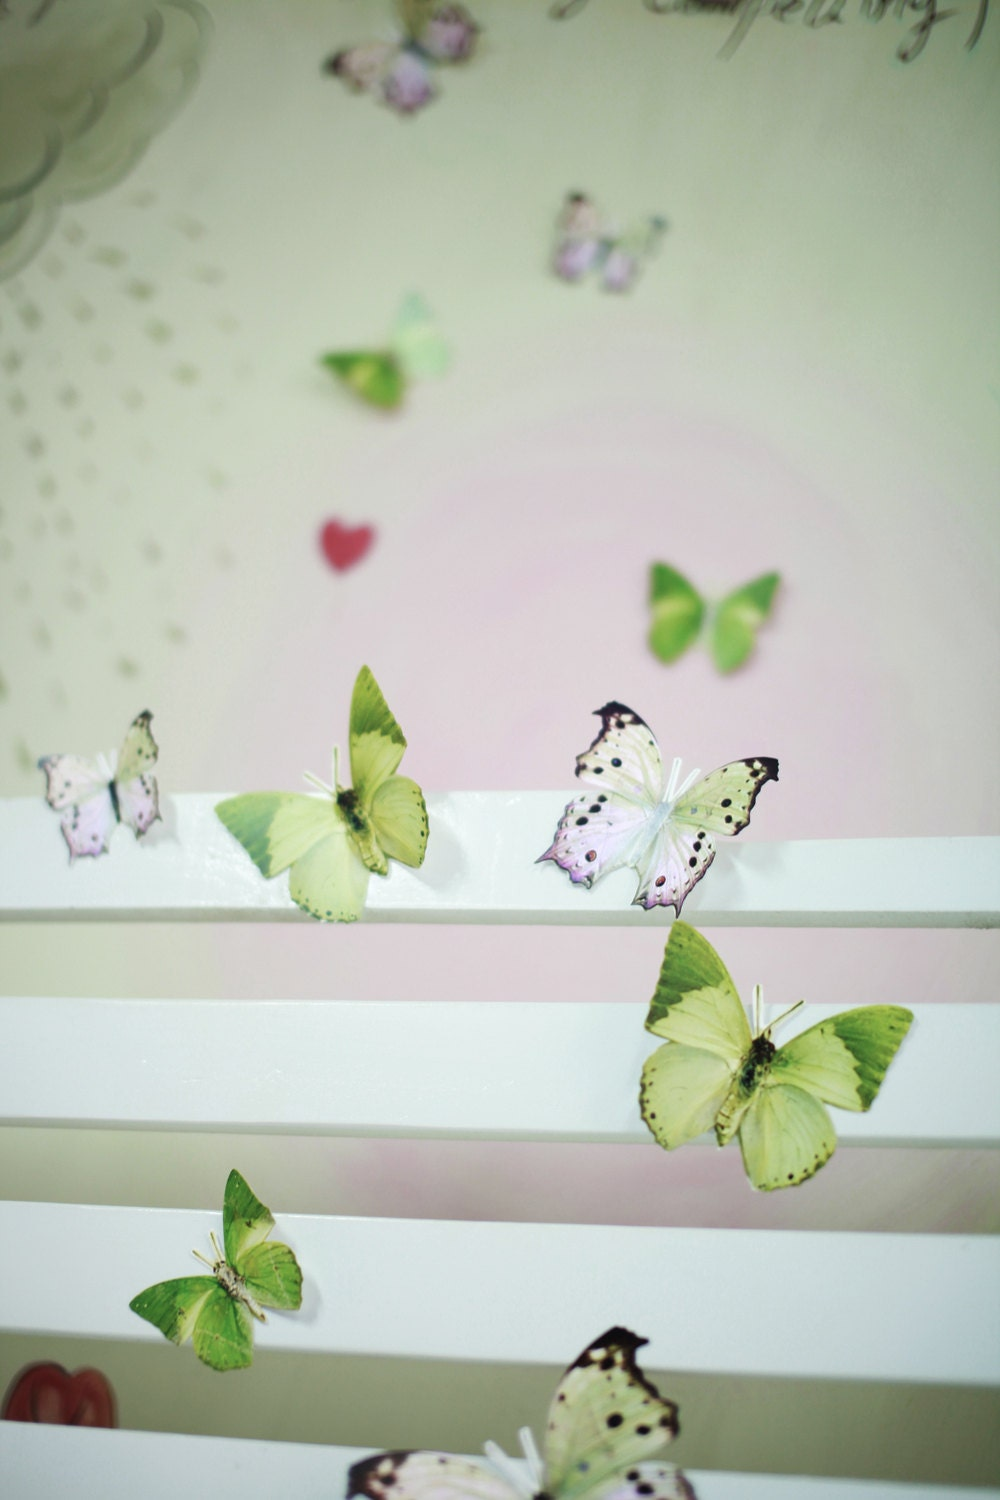 12 3D Wall Butterflies3D Butterfly Wall Art By SimplyChicLily